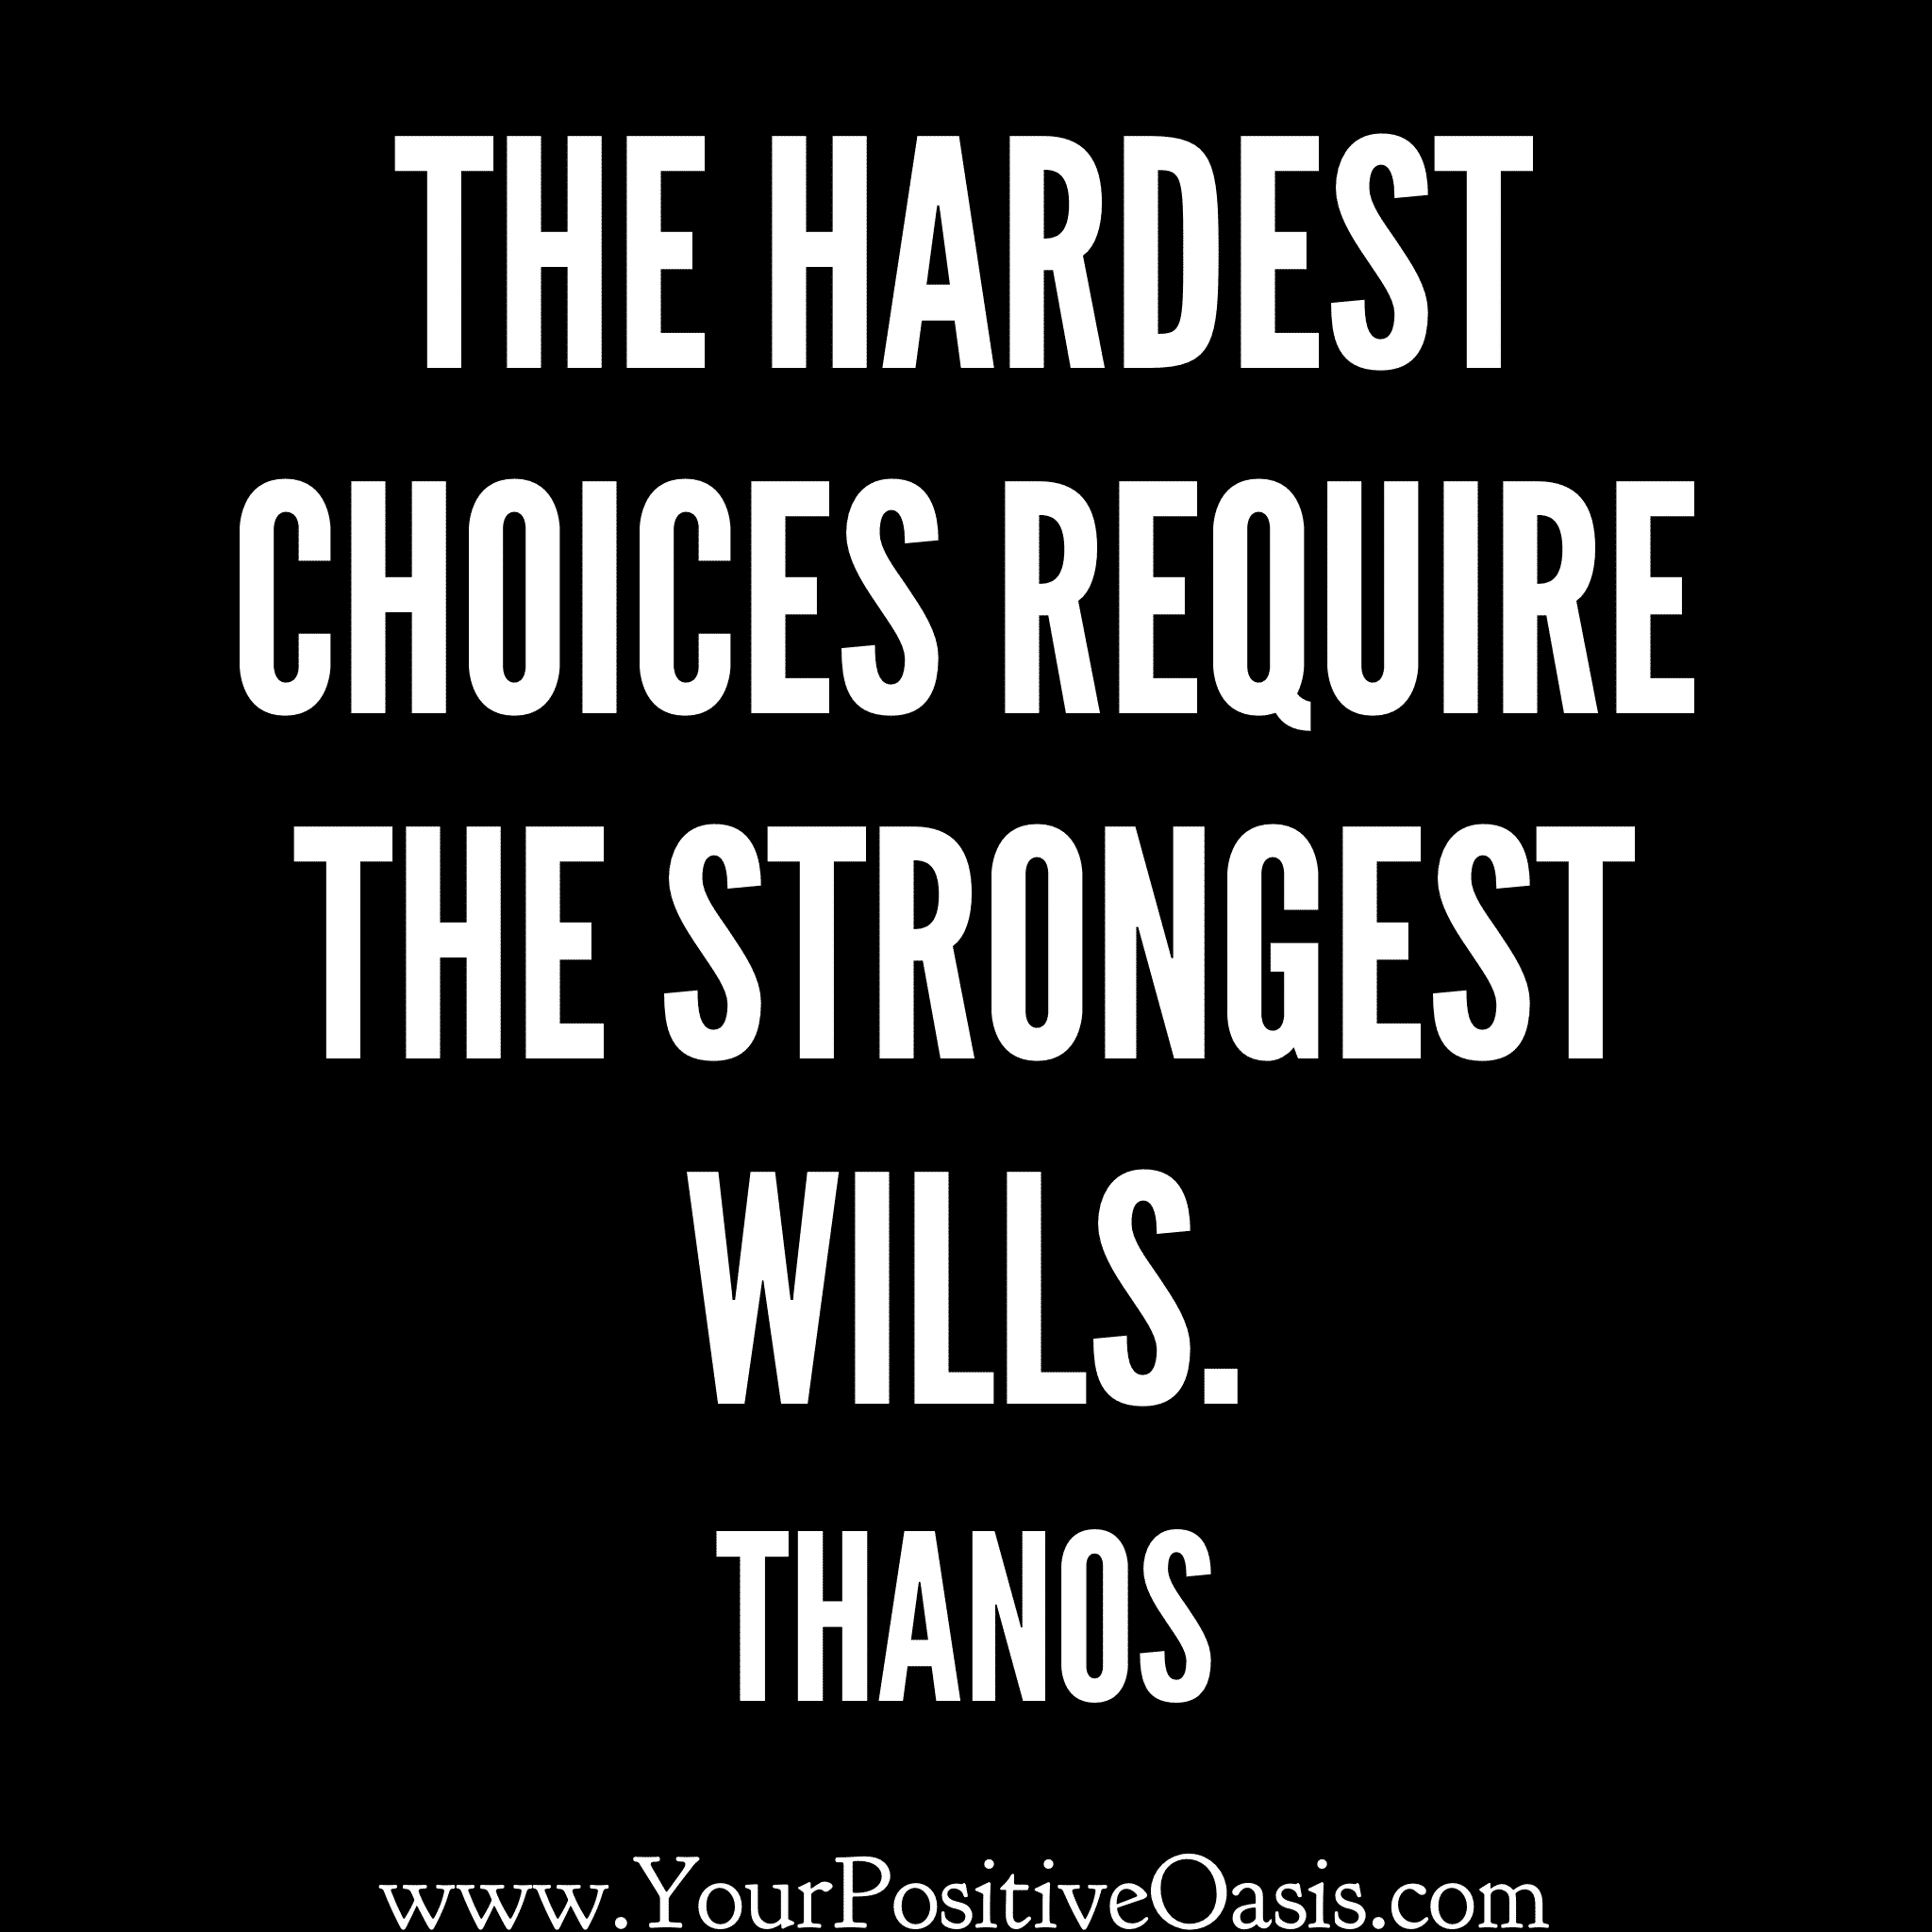 25 Thanos Quotes That Are Out Of This World